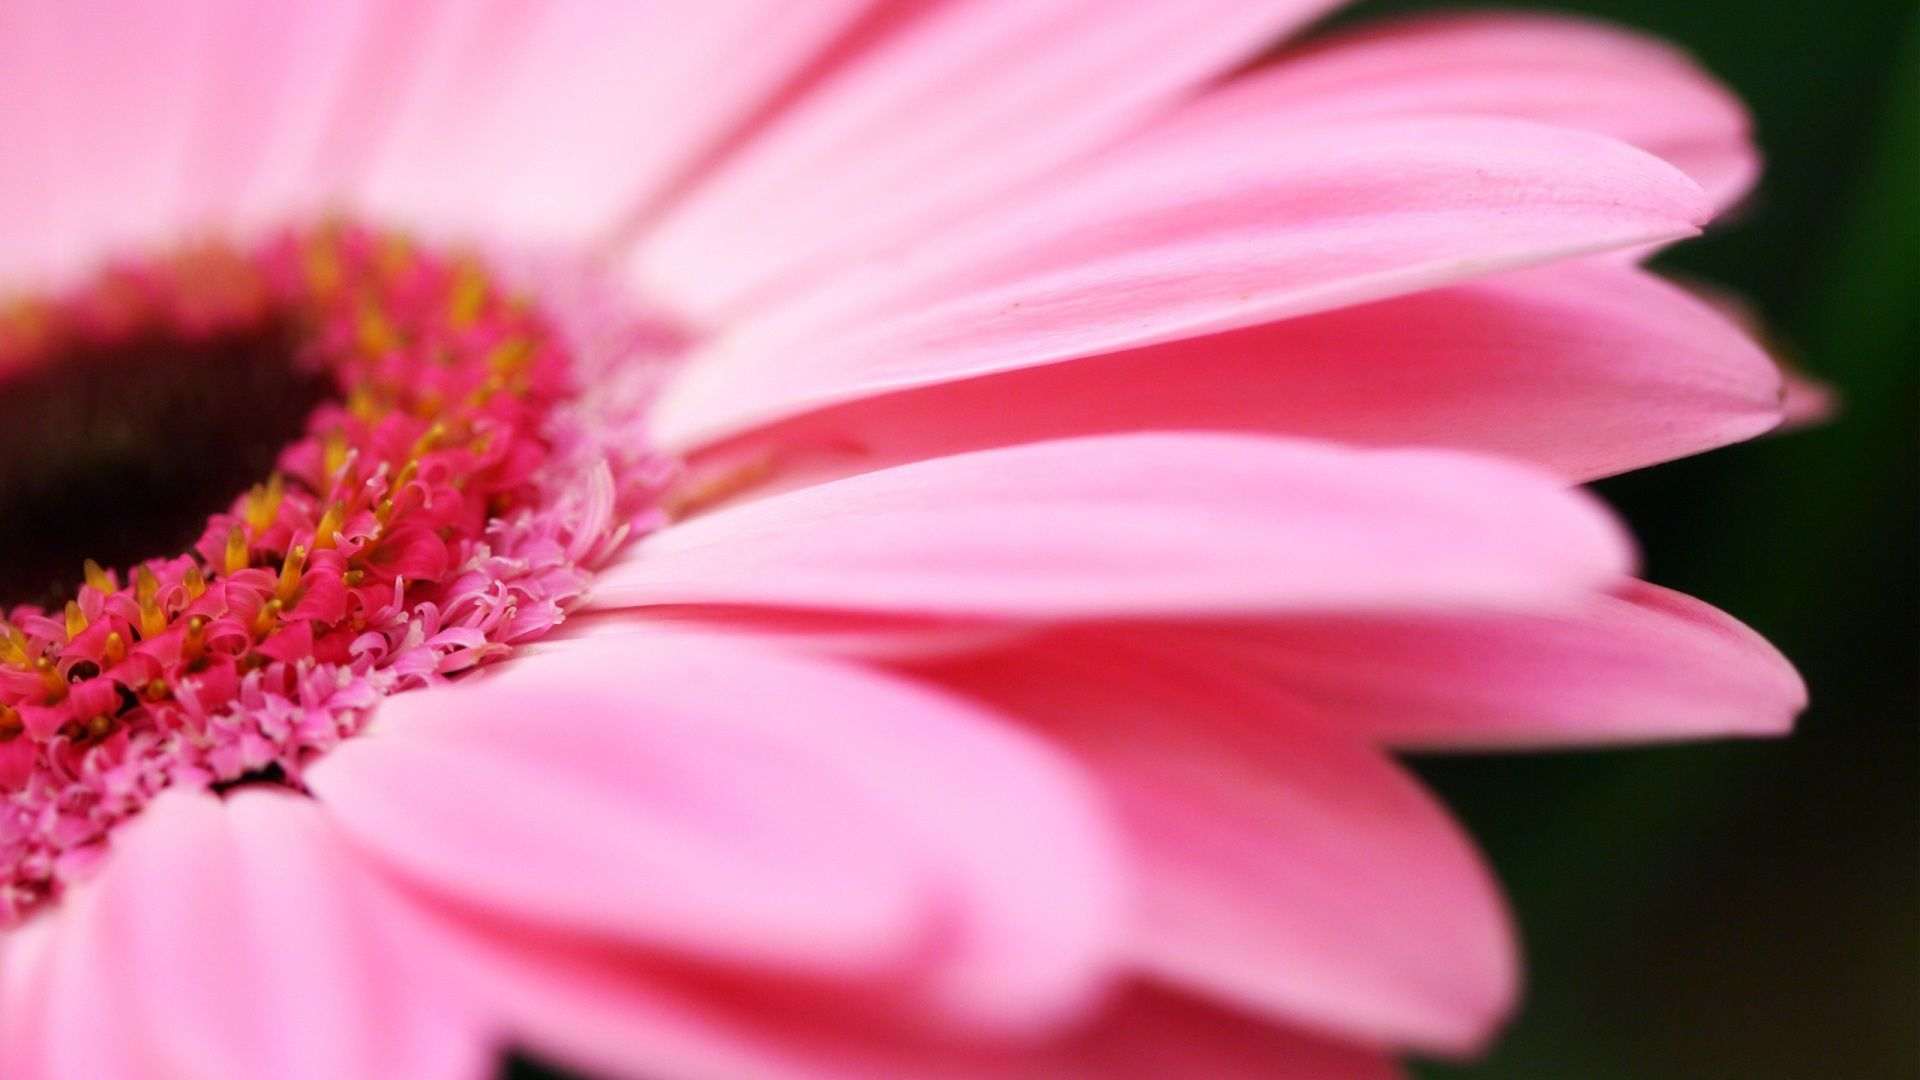 Gerbera Flower Top 10 Hd Wallpapers Rainy Day Wallpaper Rainy Wallpaper Gerbera Flower